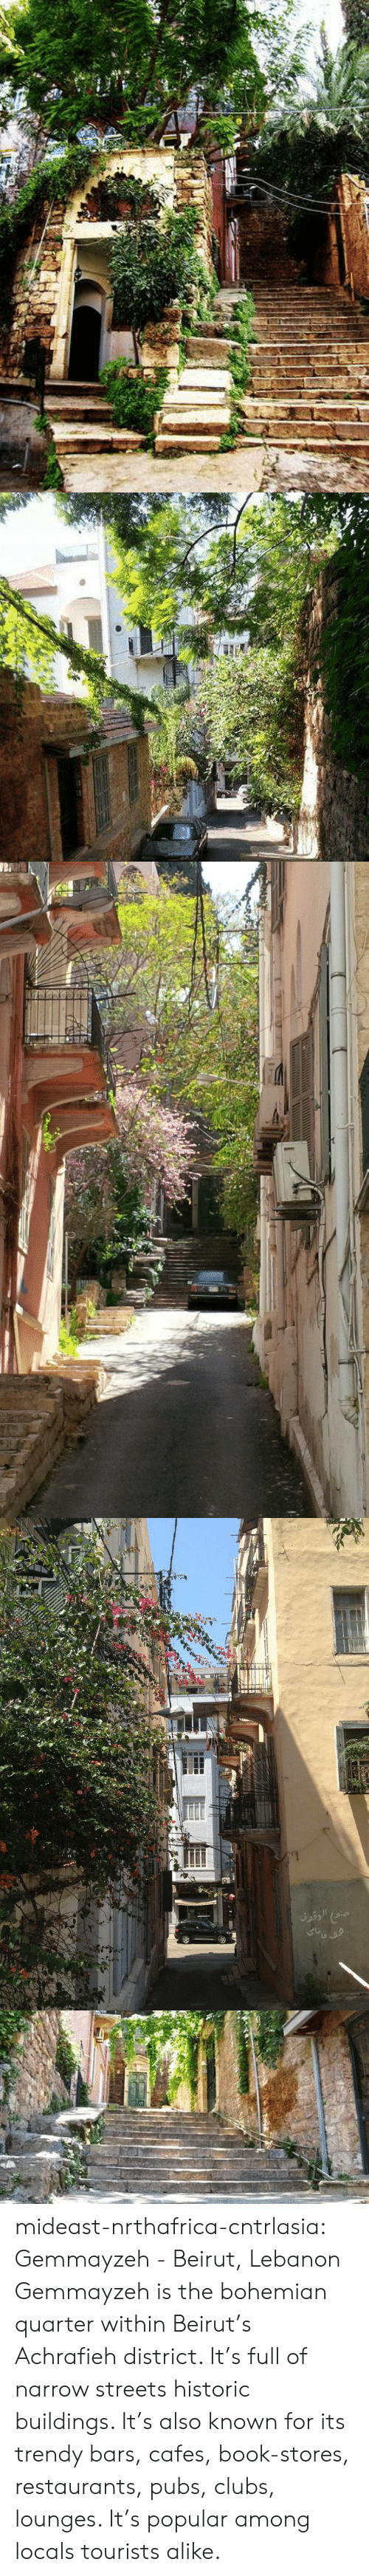 Streets, Tumblr, and Blog: mideast-nrthafrica-cntrlasia:  Gemmayzeh - Beirut, Lebanon Gemmayzeh is the bohemian quarter within Beirut's Achrafieh district. It's full of narrow streets  historic buildings. It's also known for its trendy bars, cafes, book-stores, restaurants, pubs, clubs,  lounges. It's popular among locals  tourists alike.